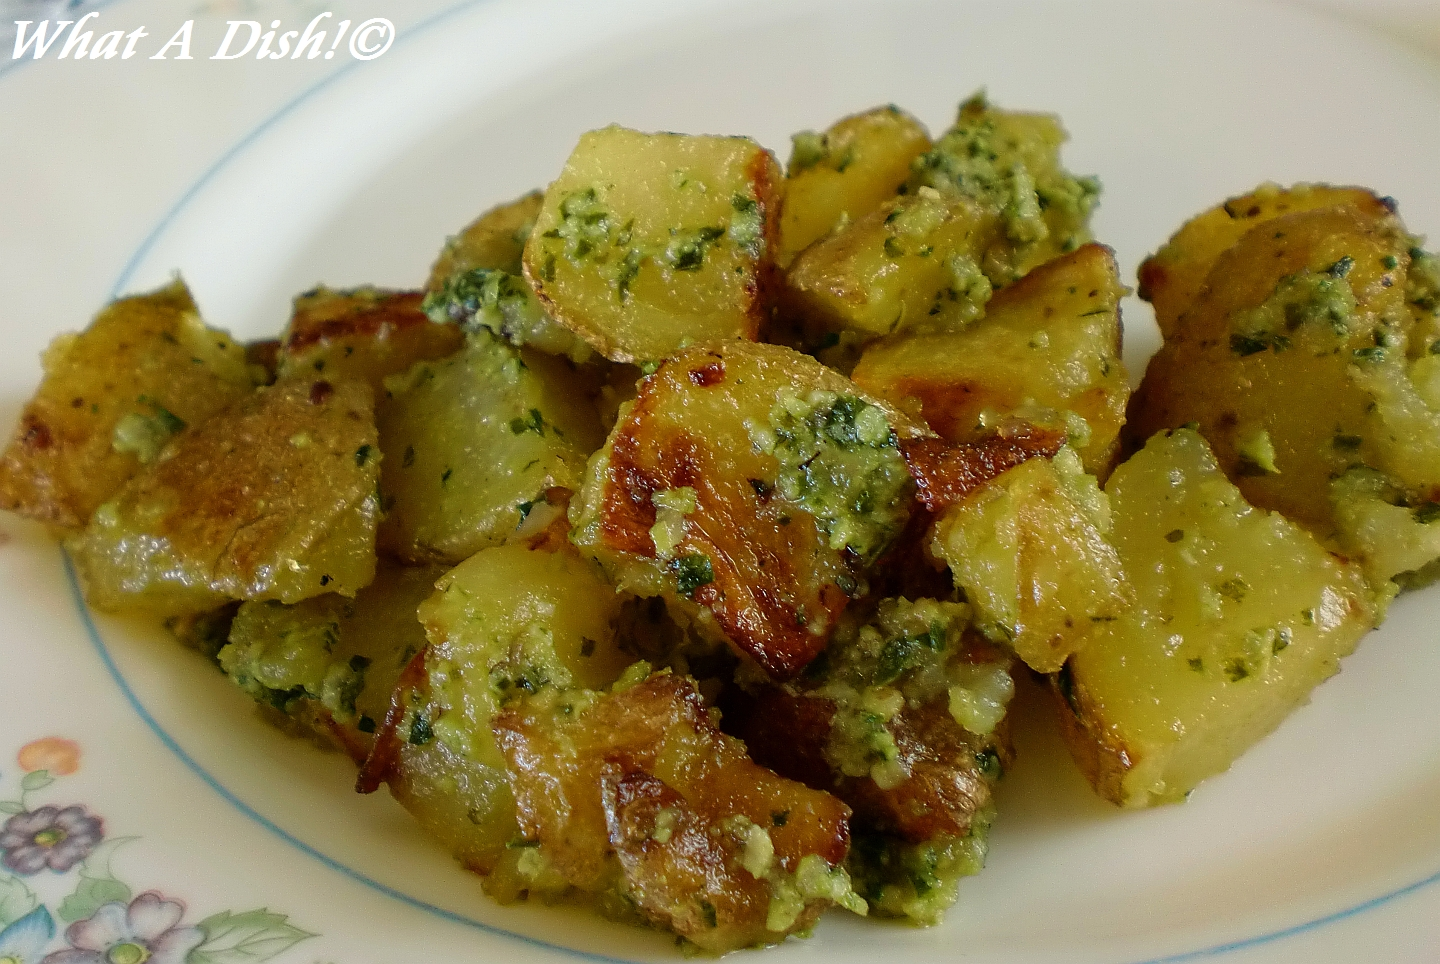 What A Dish!: Roasted Potatoes with Pesto